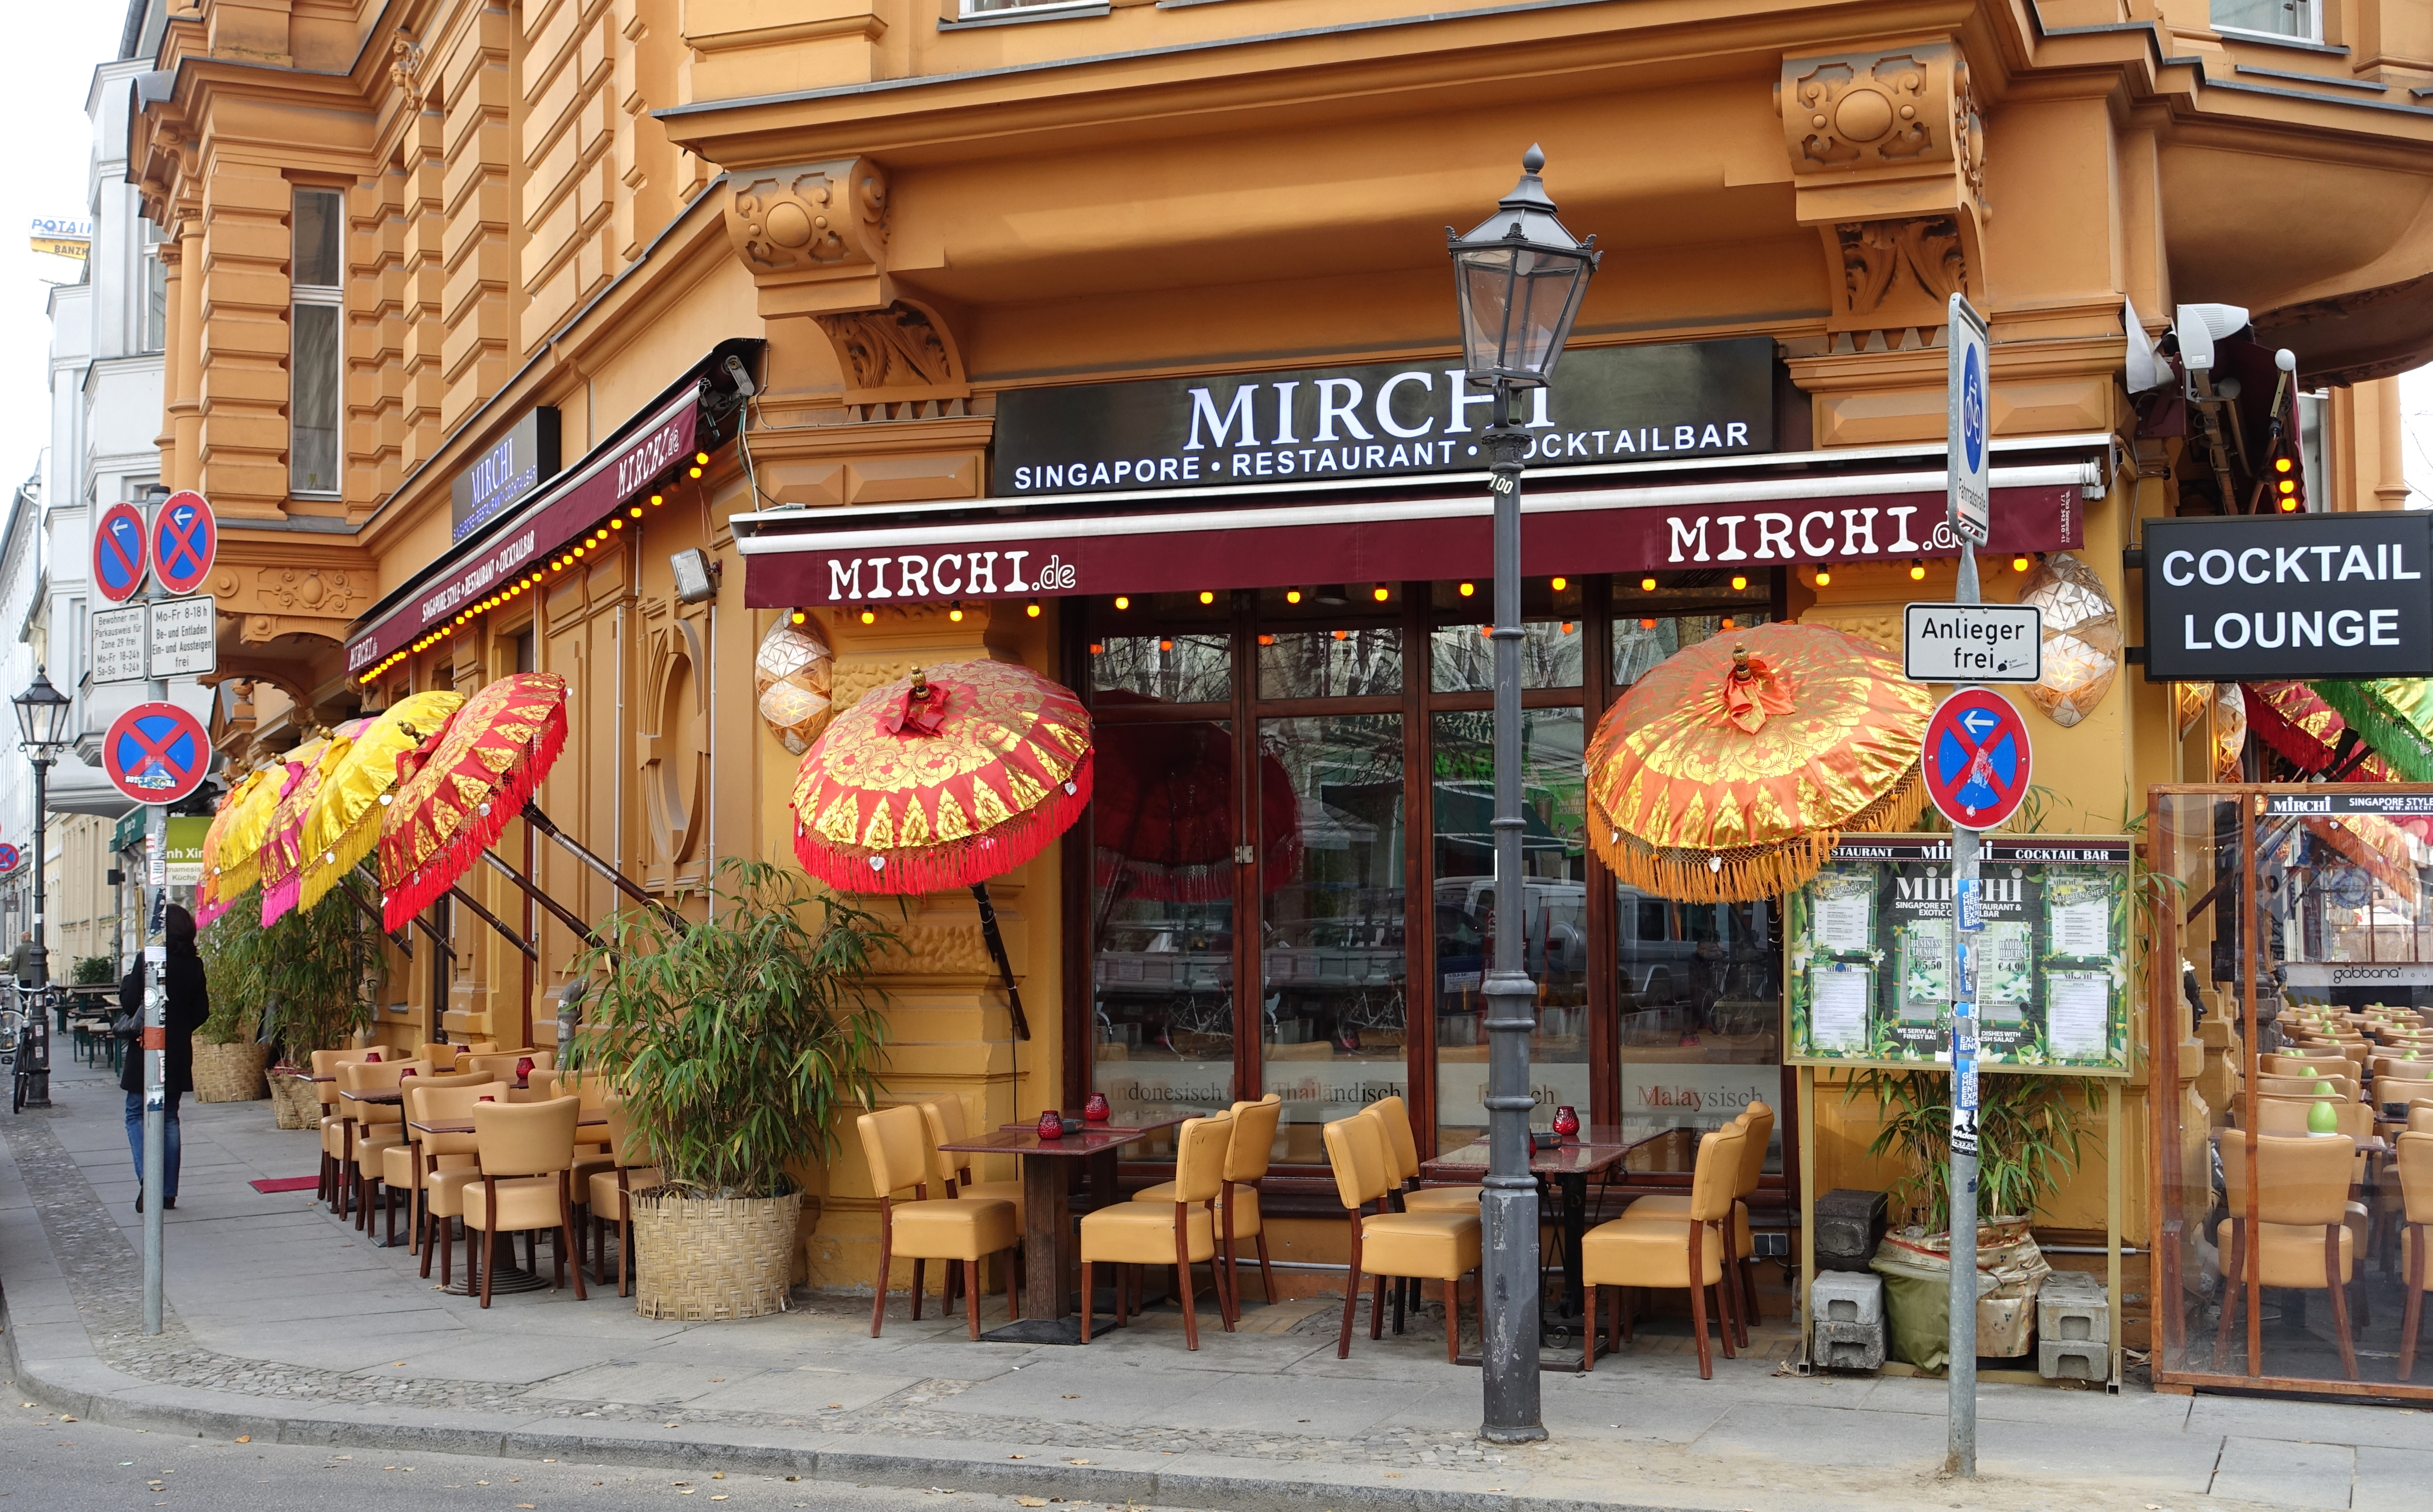 file mirchi singapore restaurant berlin germany dsc00624 jpg wikimedia commons. Black Bedroom Furniture Sets. Home Design Ideas